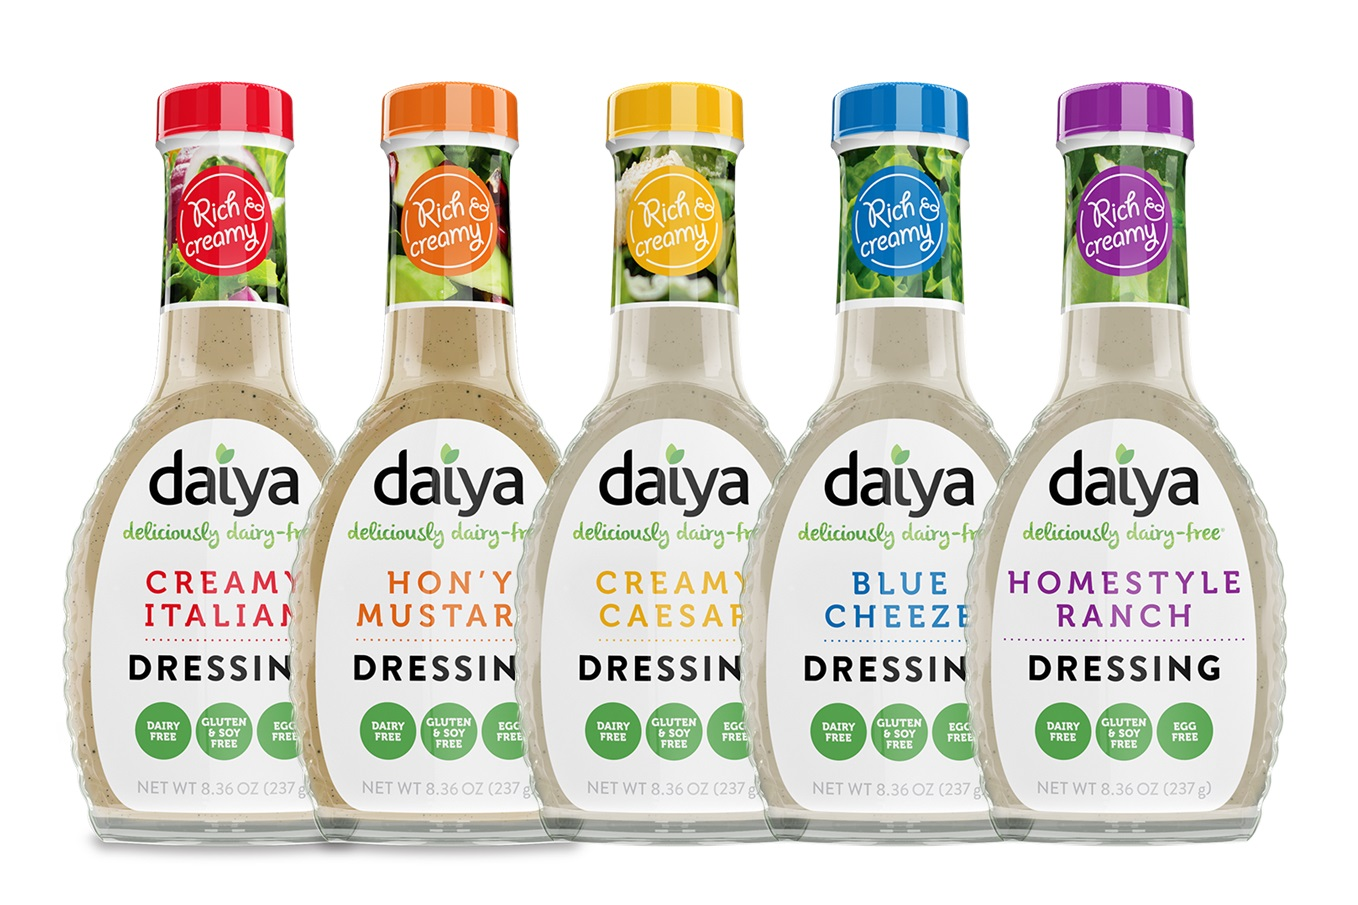 Daiya Dairy-Free Dressings Reviews and Info - Vegan, gluten-free, nut-free, soy-free creamy dressings - they're even made without coconut, palm, sesame, legumes and carrageenan!